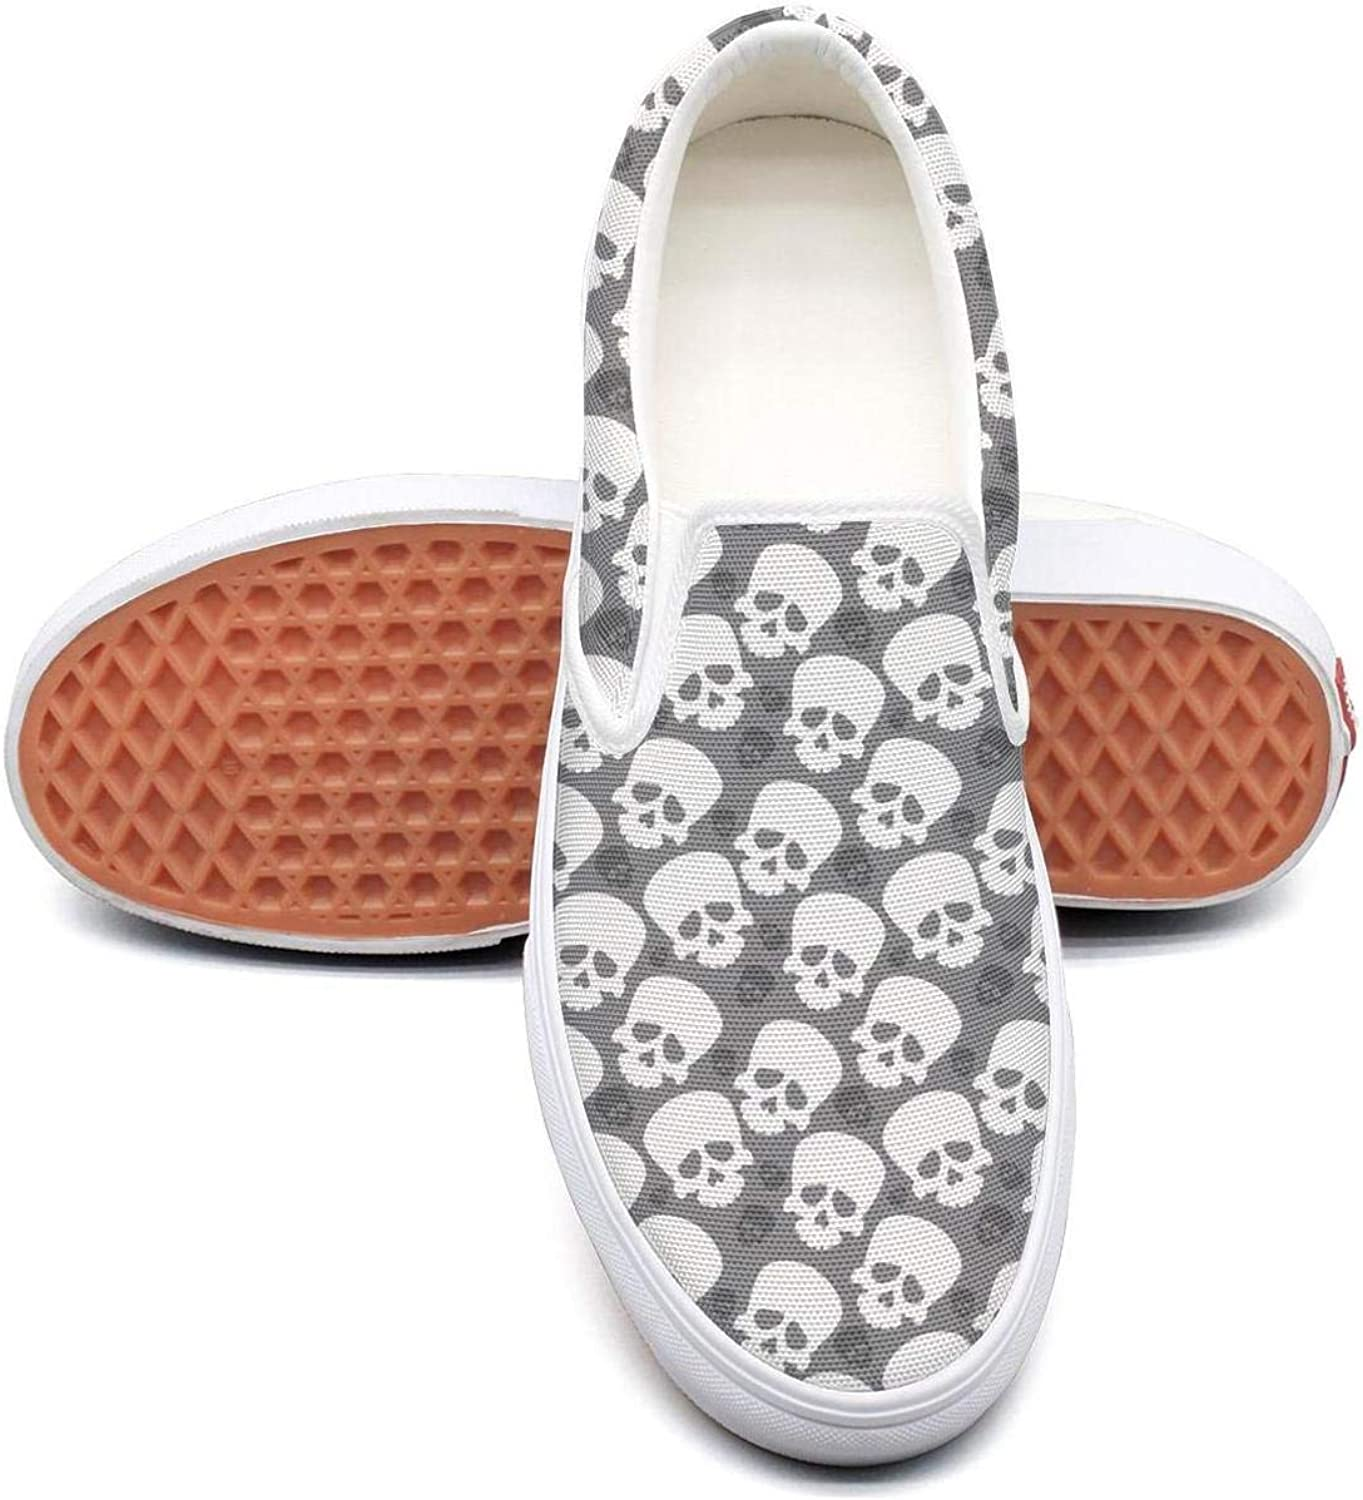 Skulls Personality Print Slip On Superior Comfort Loafers Canvas shoes for Women Fashion